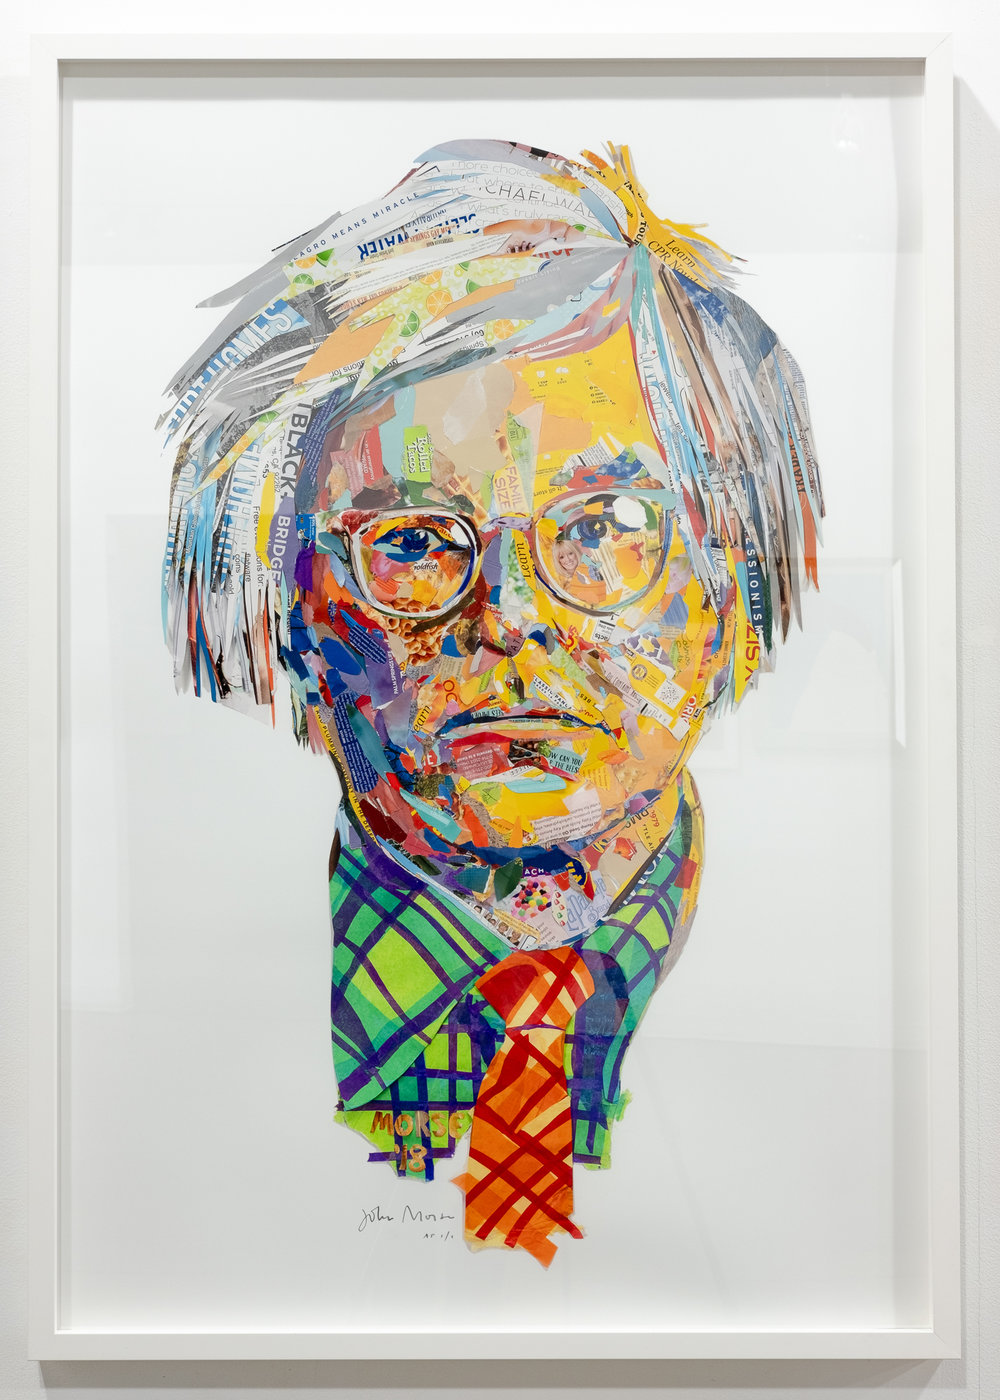 "John Morse ""Warhol"" found paper collage 35 x 50 inches JMO 012G"